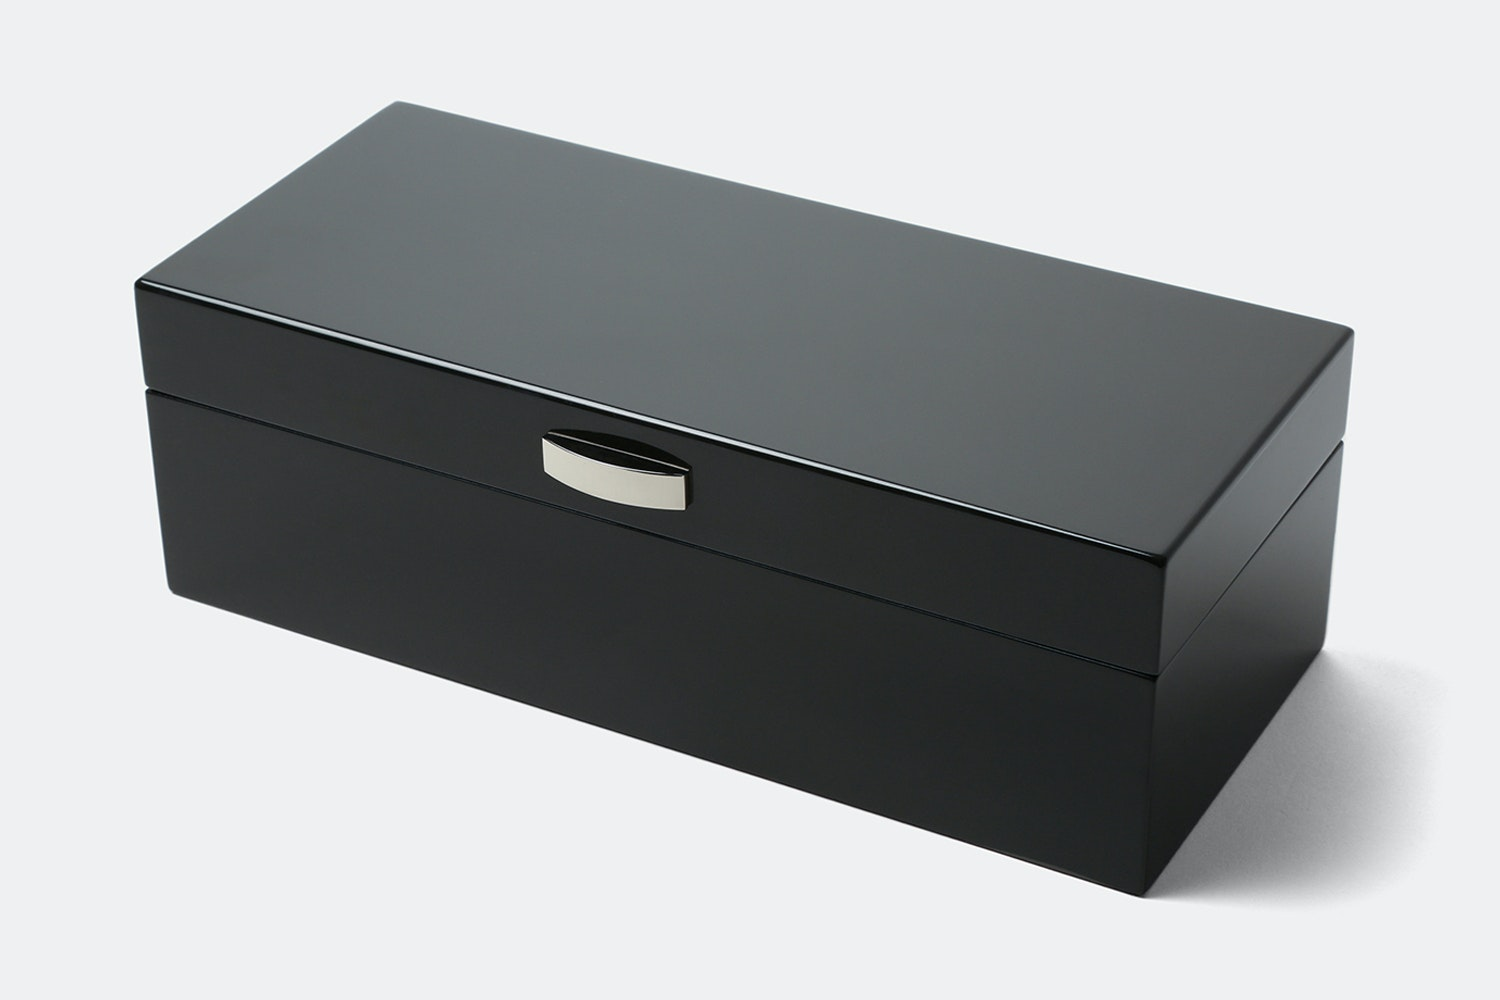 3 Watch Box with Lift out Valet | Black/Grey (- $12)